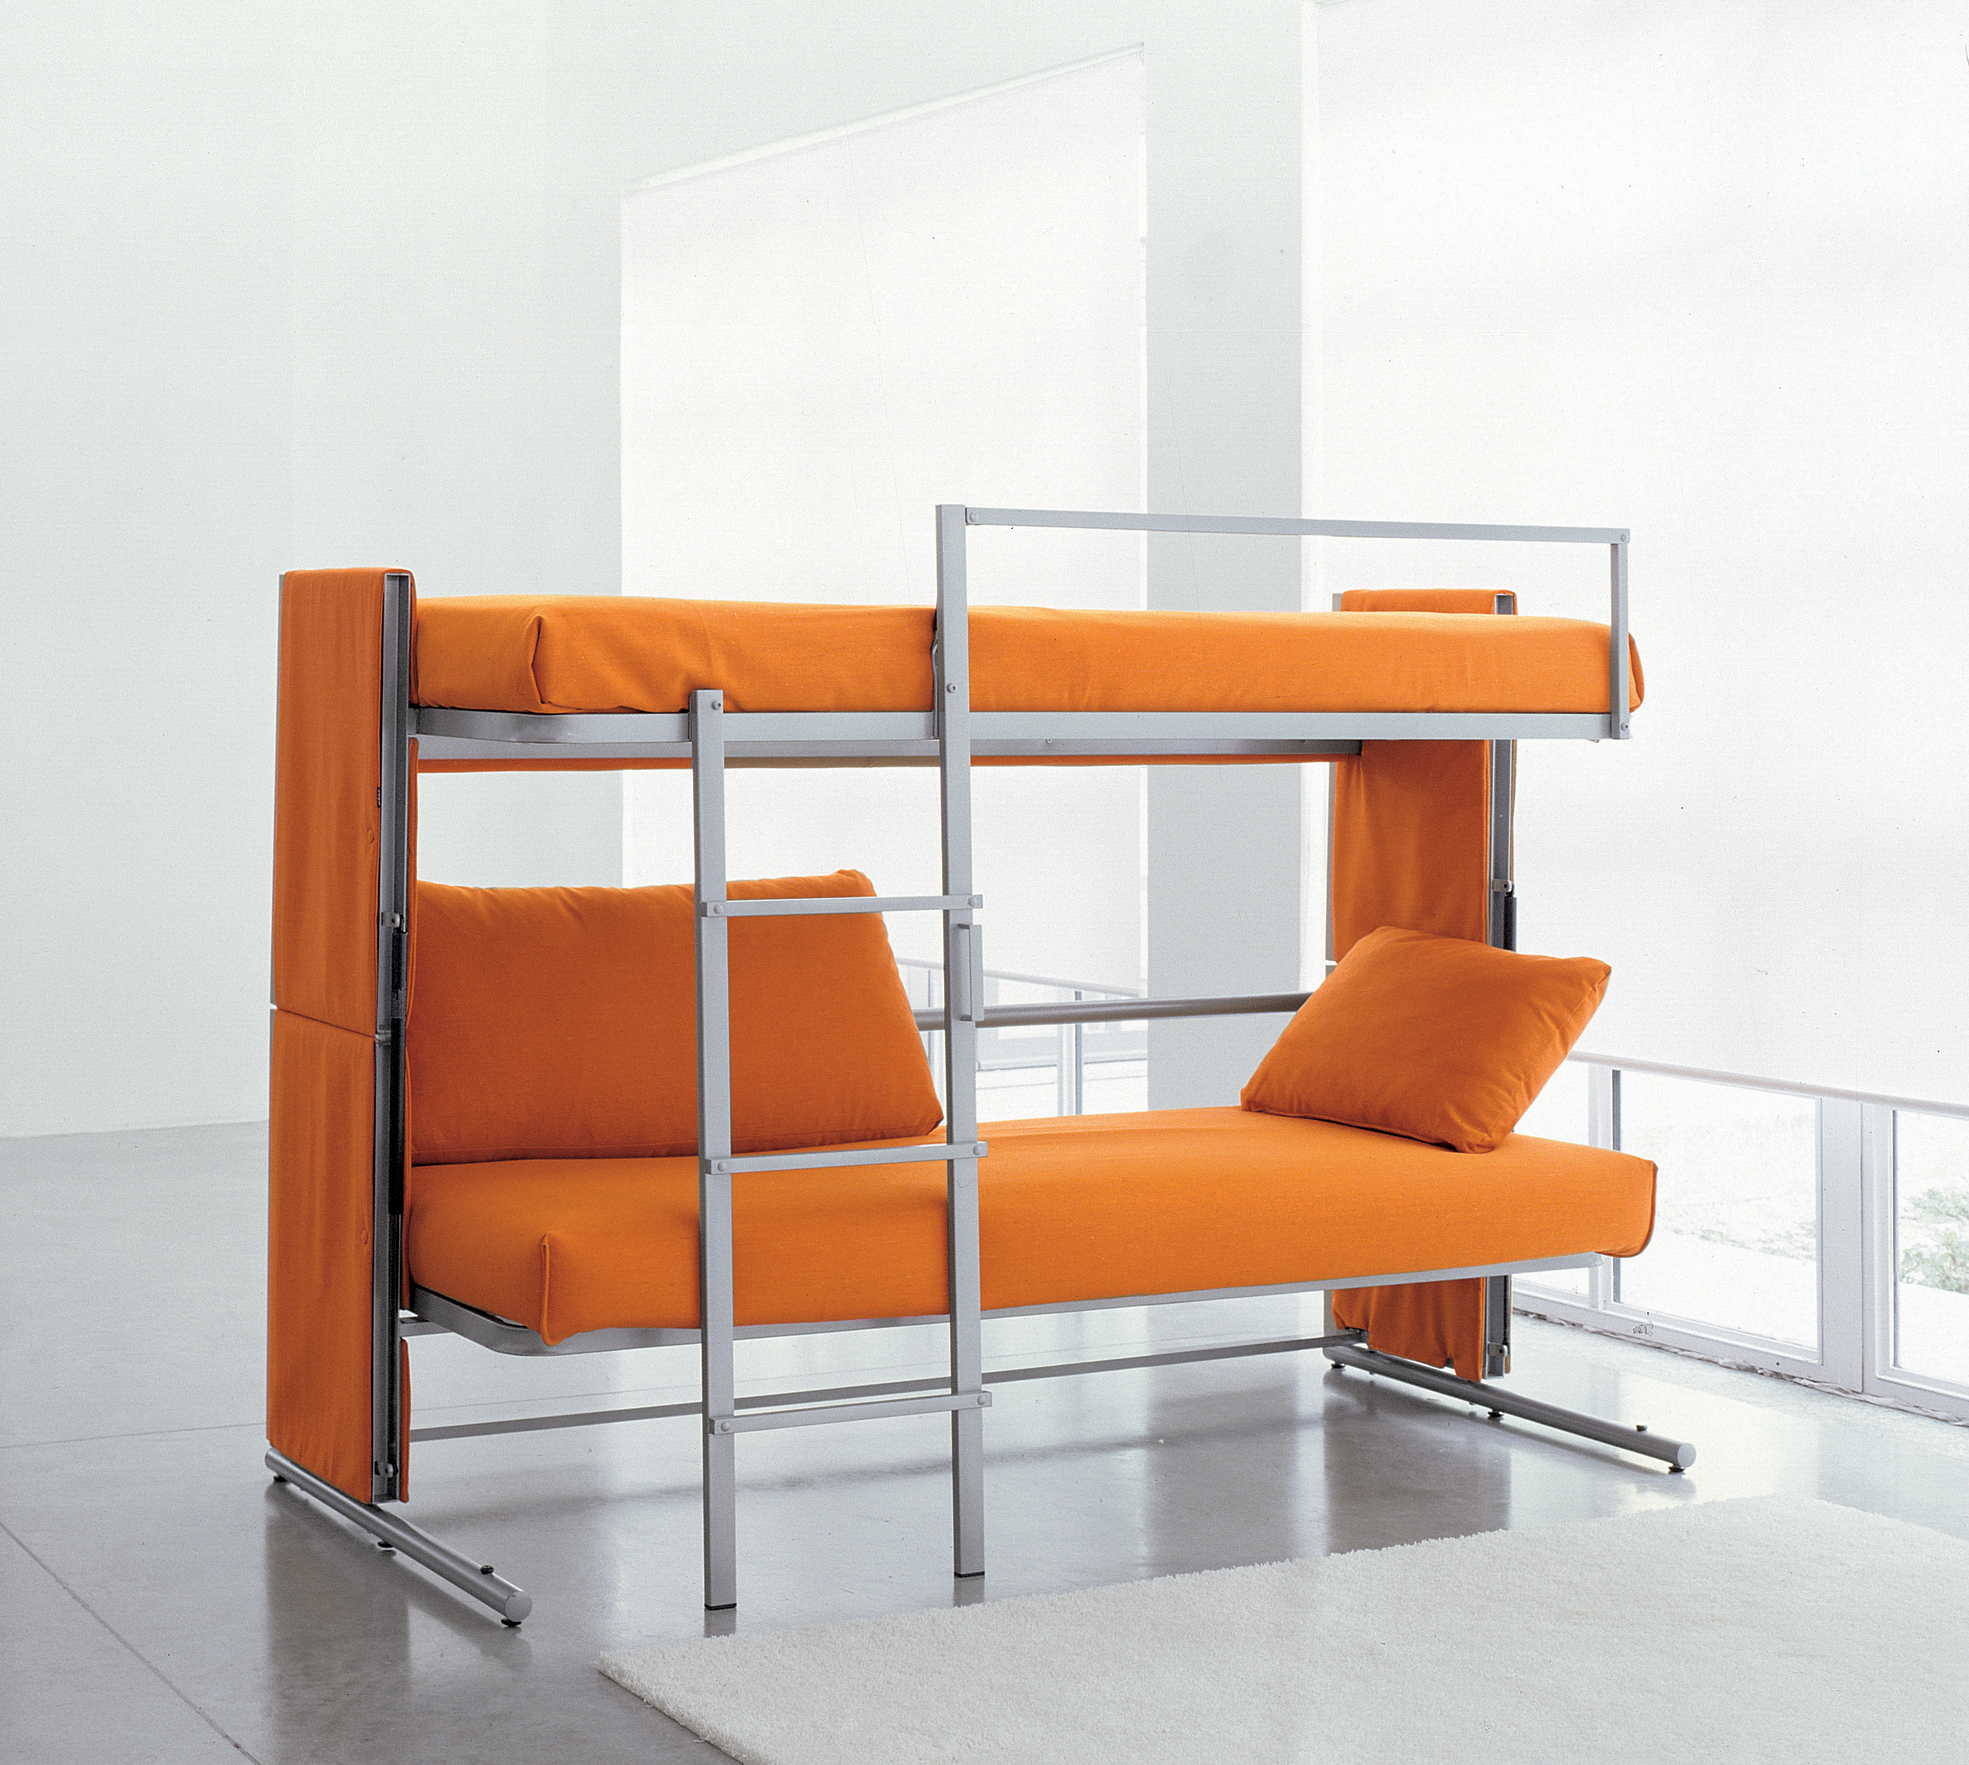 Double Futon Beds Uk Doc A Sofa Bed That Converts In To A Bunk Bed In Two Secounds